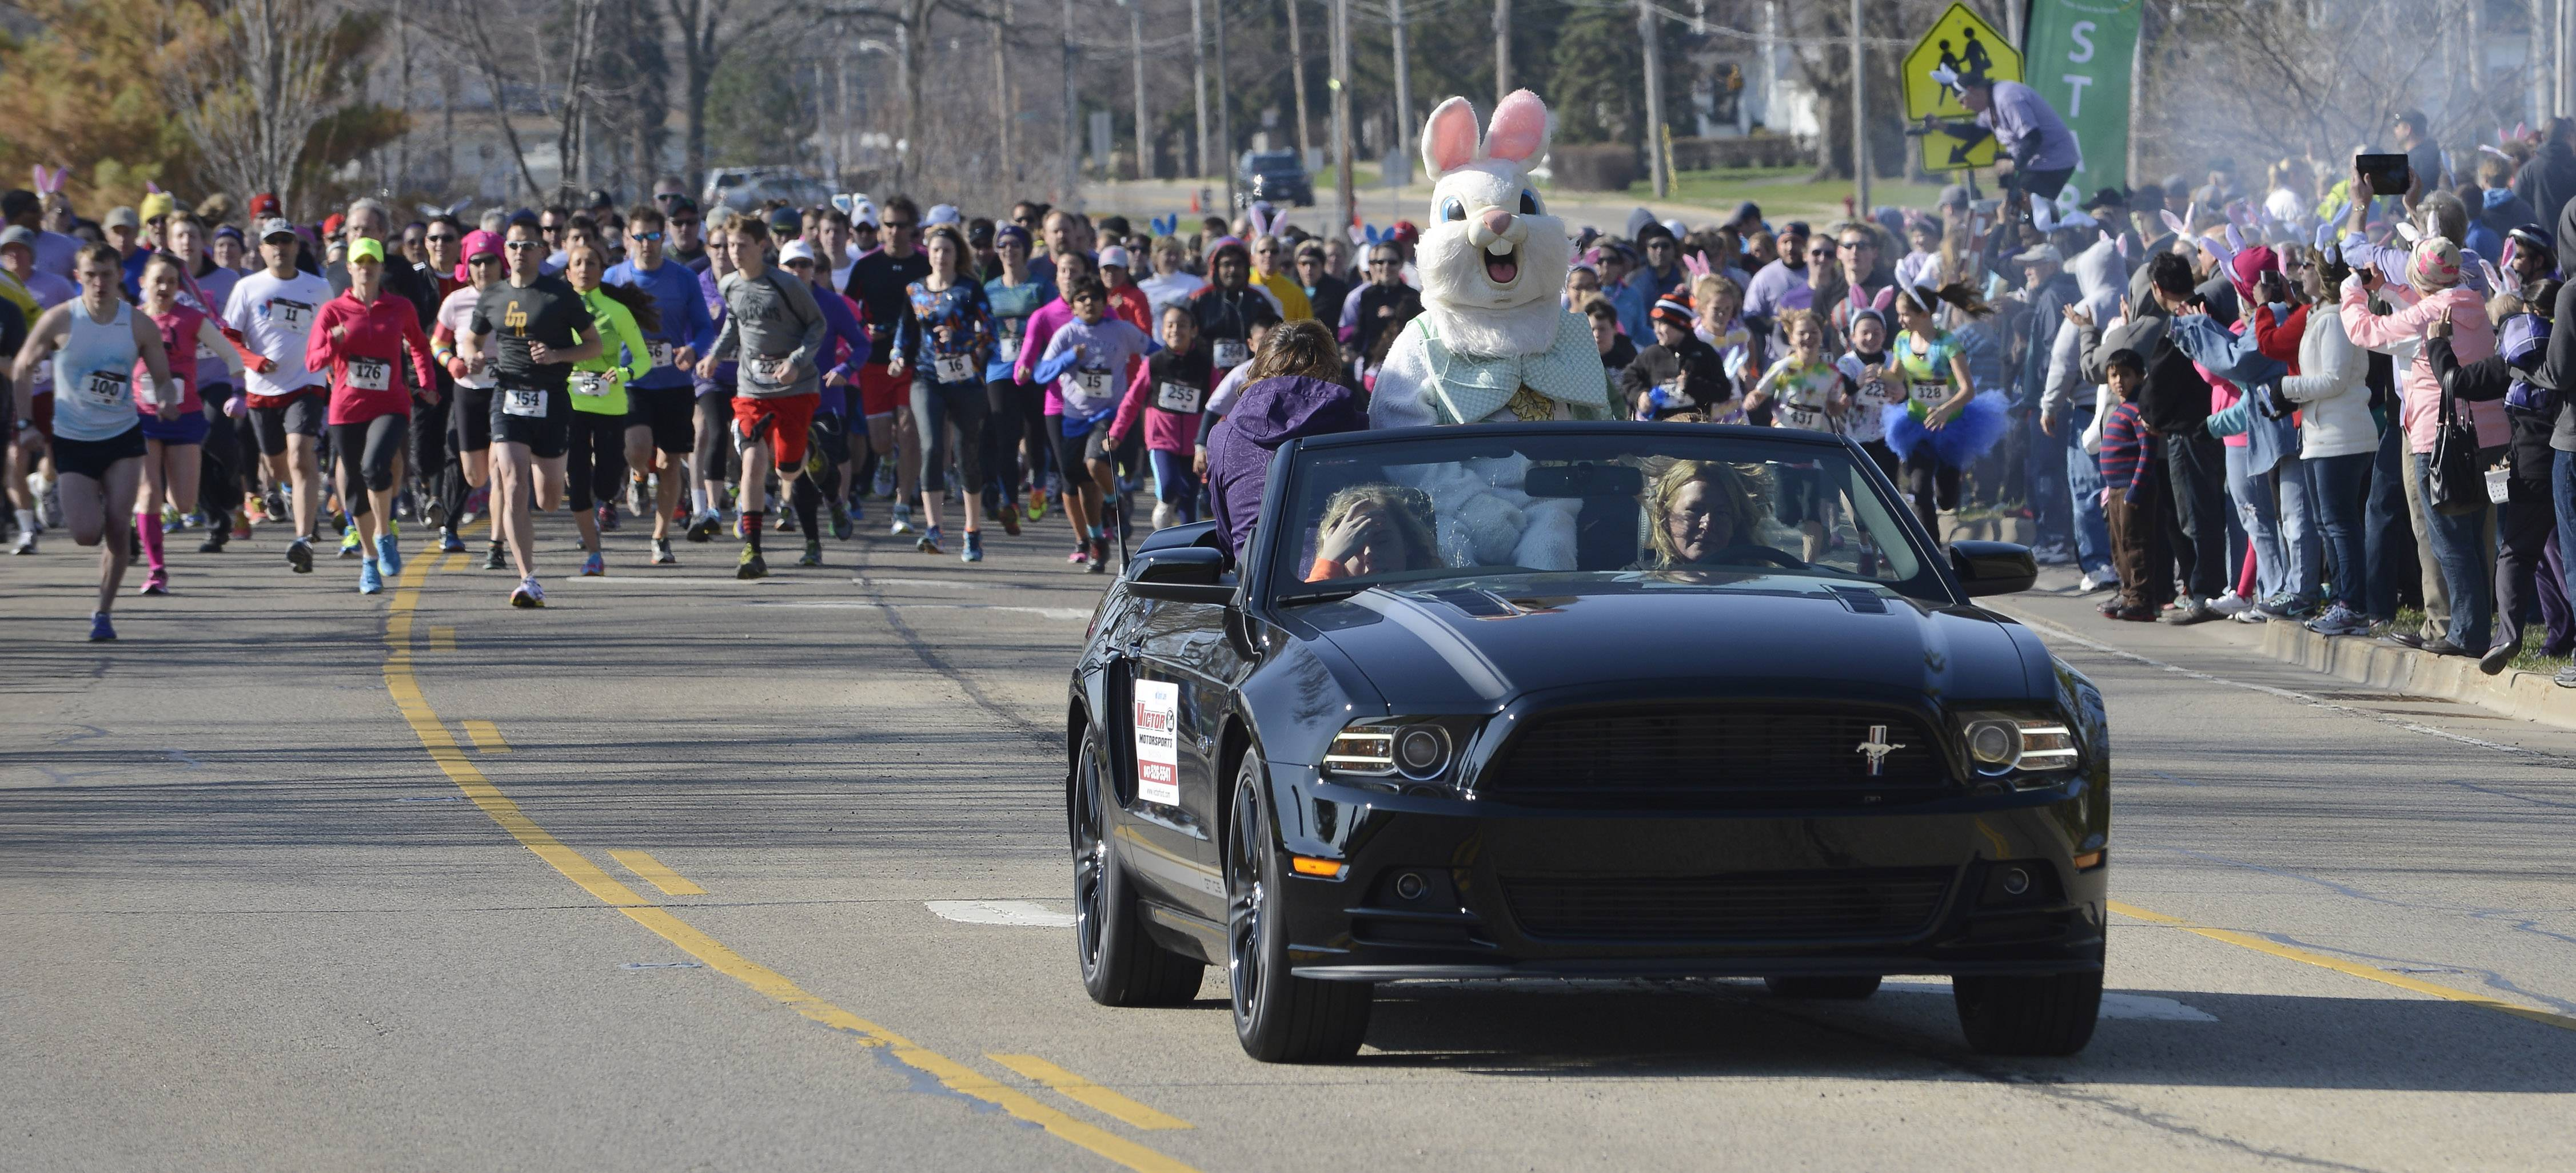 The Easter Bunny leads runners at the start of the third annual Bunny Hop run and walk in Wauconda Saturday.